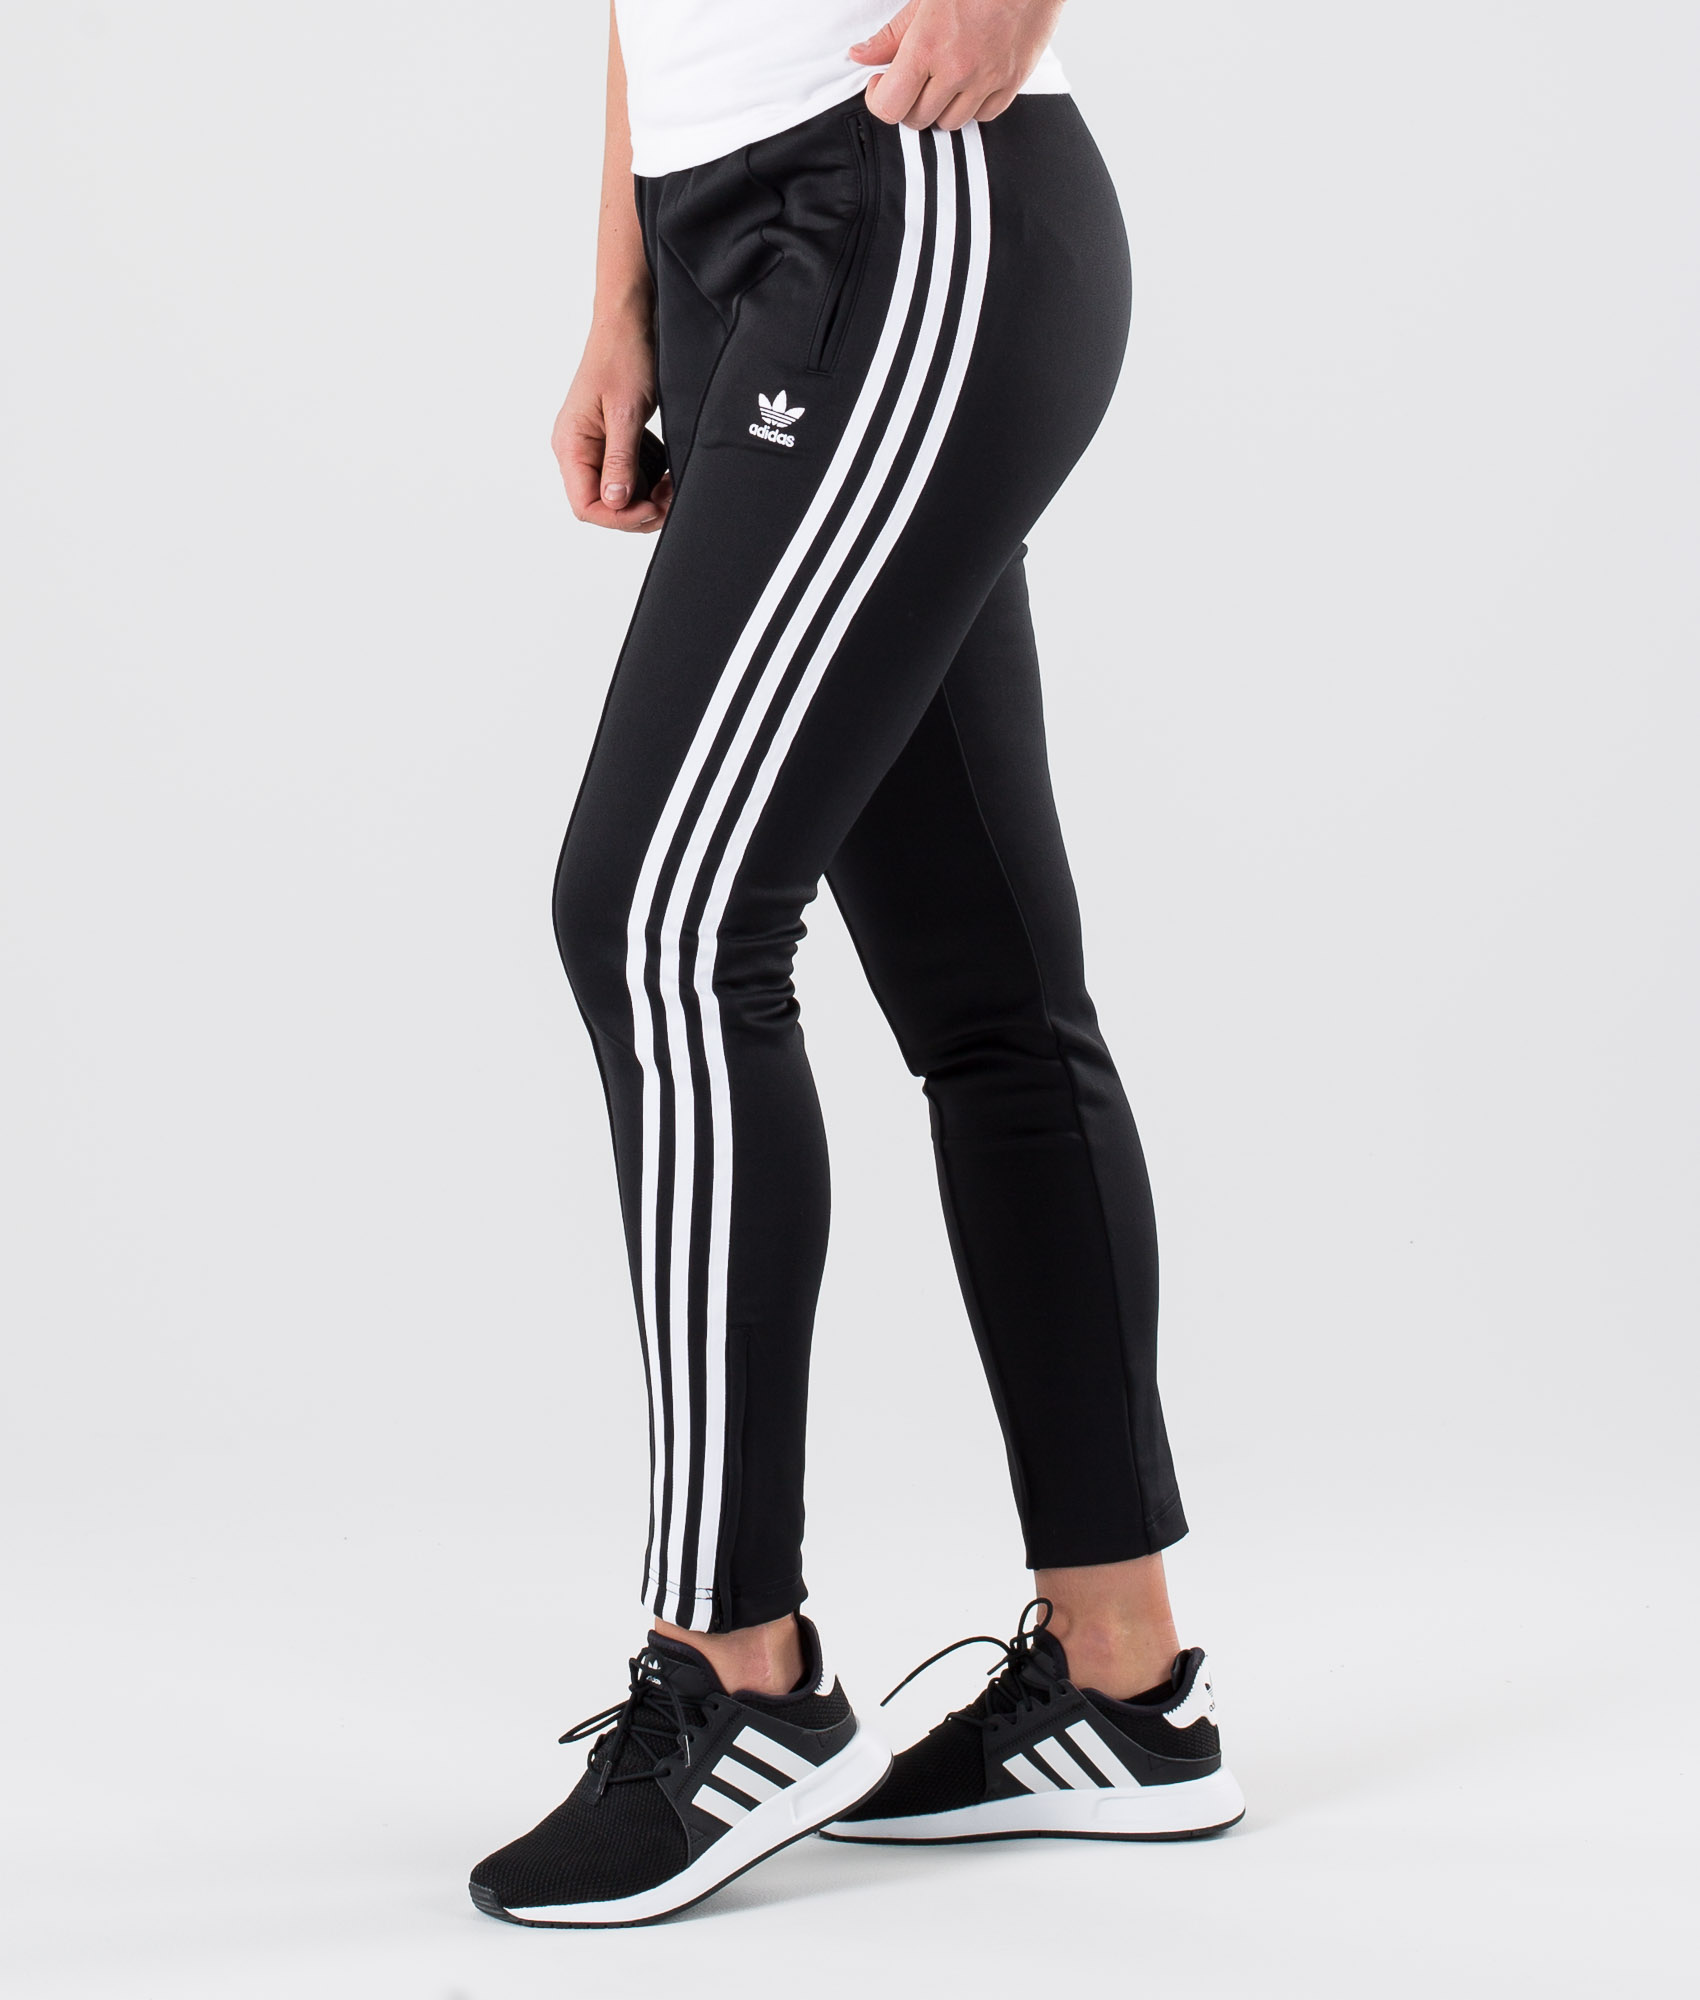 Adidas Originals Sst Tp Pants Black